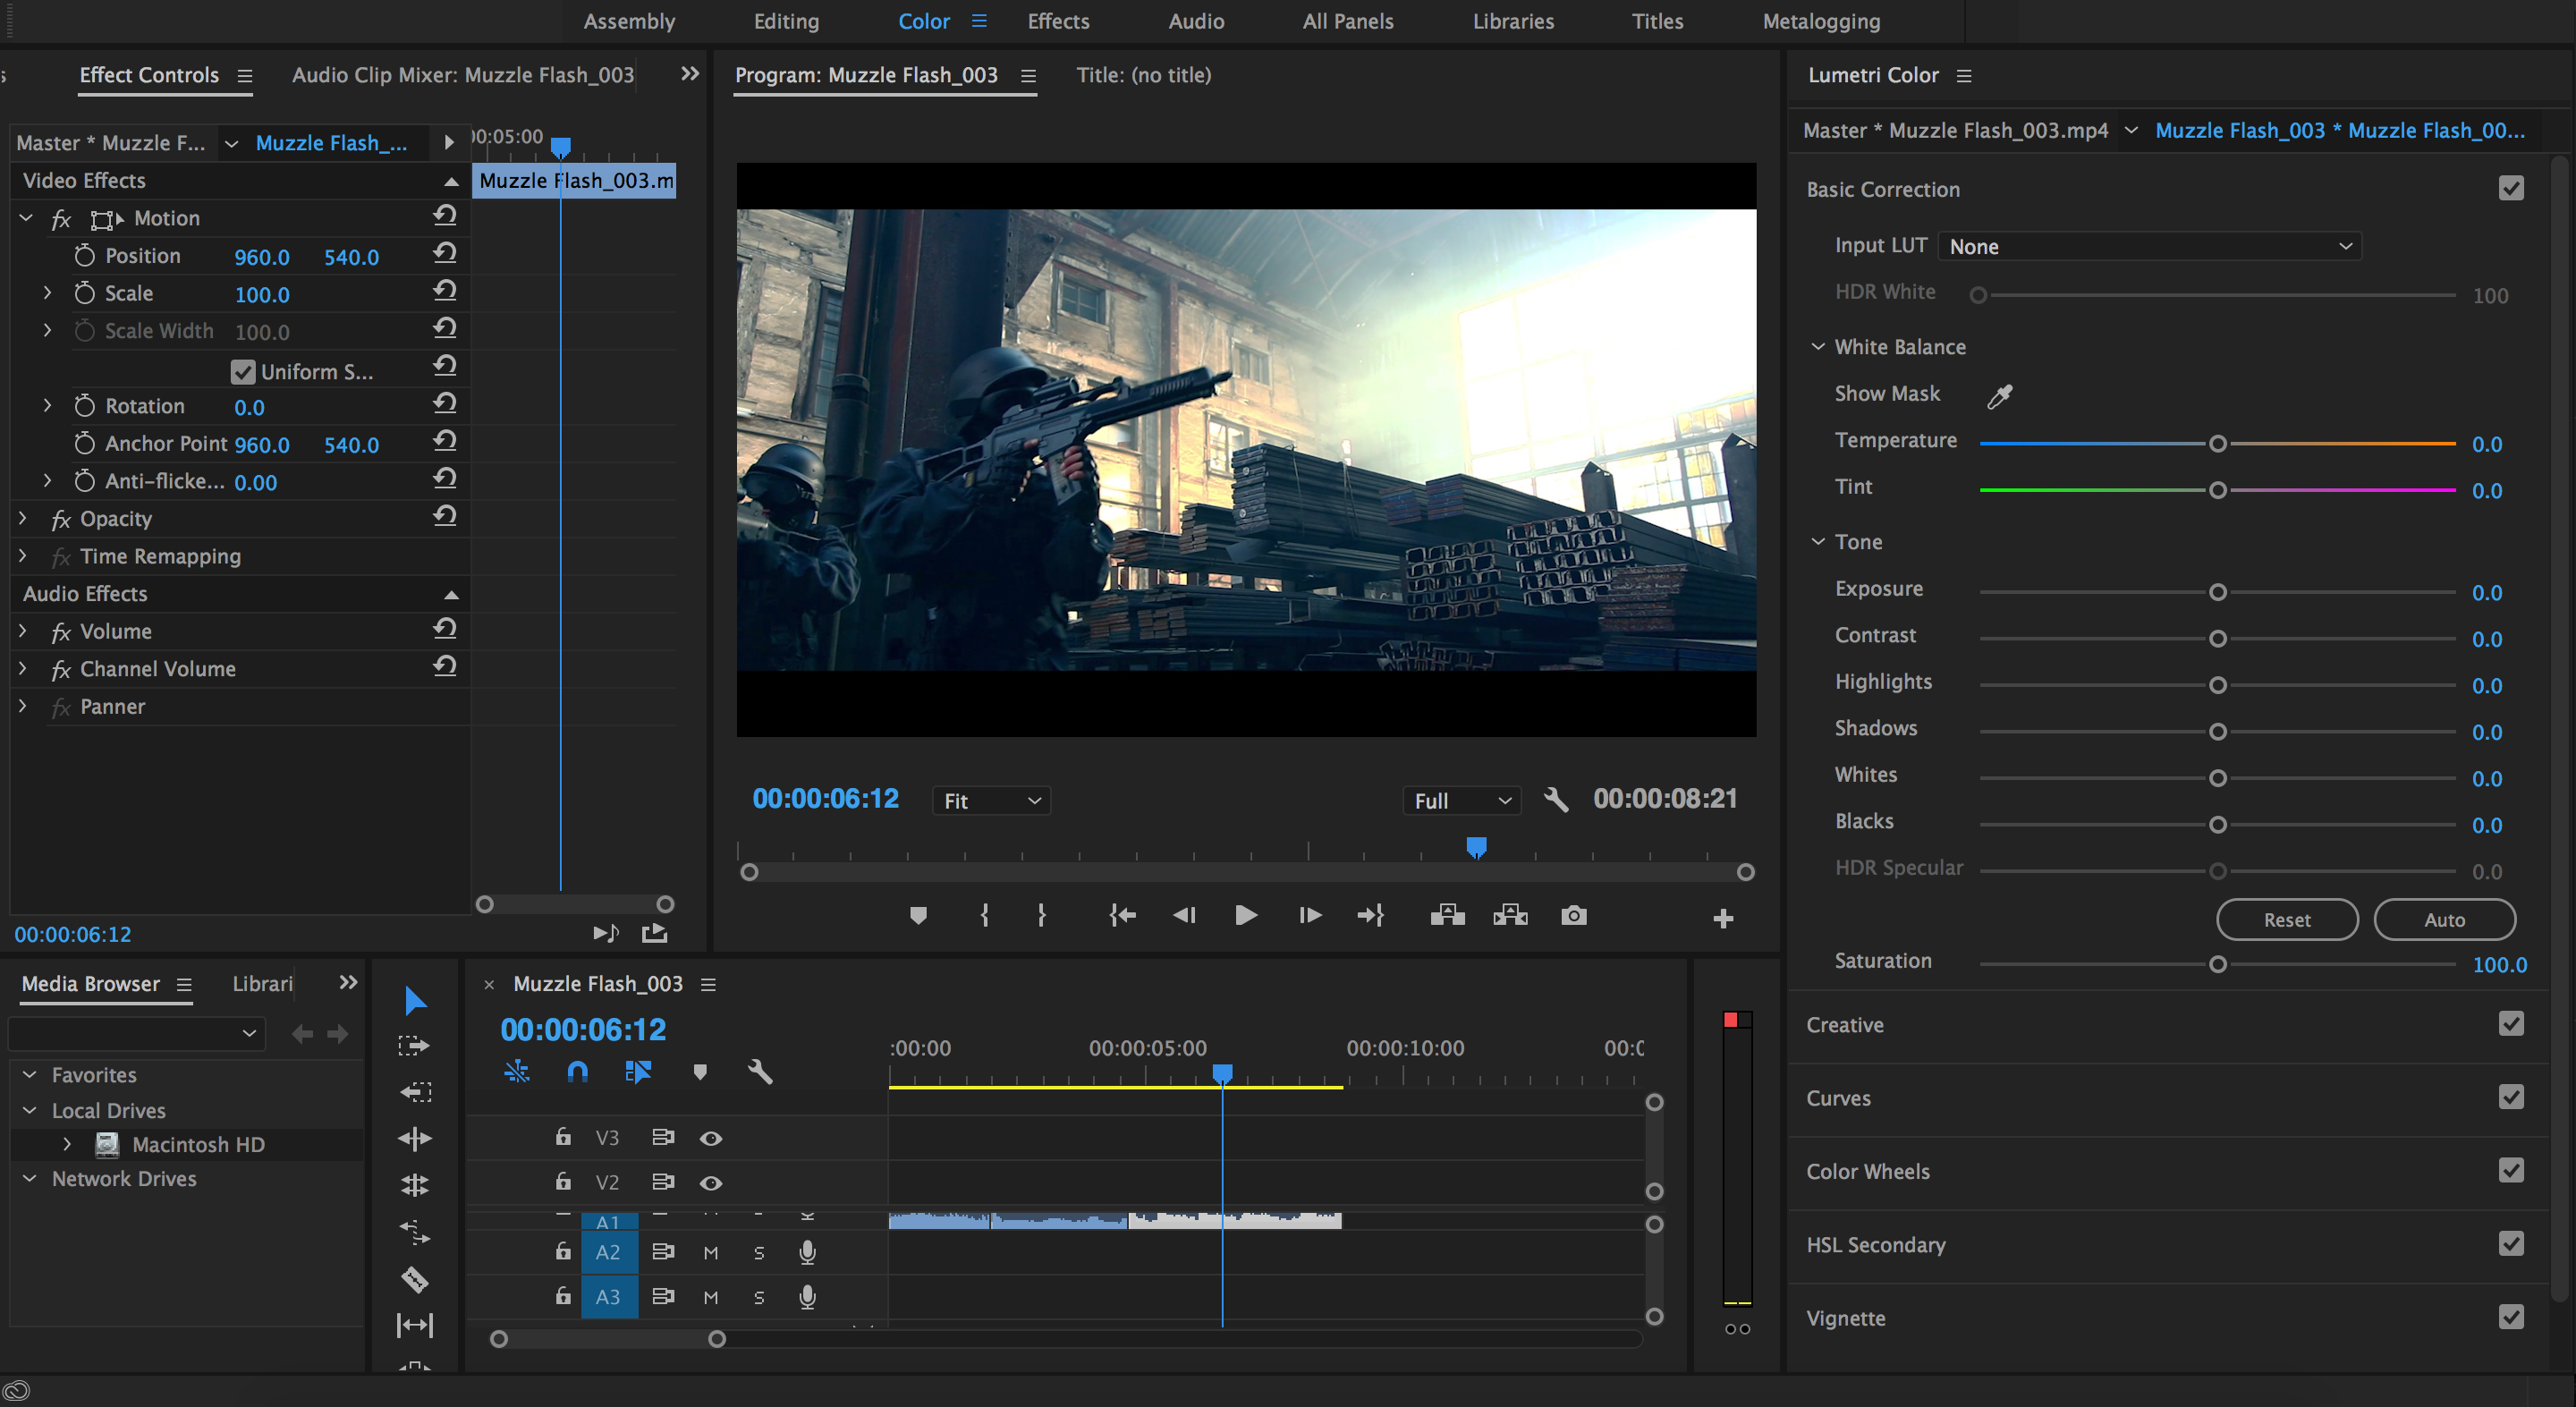 The Best Color Grading Software and Plugins for Video Editors - Premiere Pro Lumetri